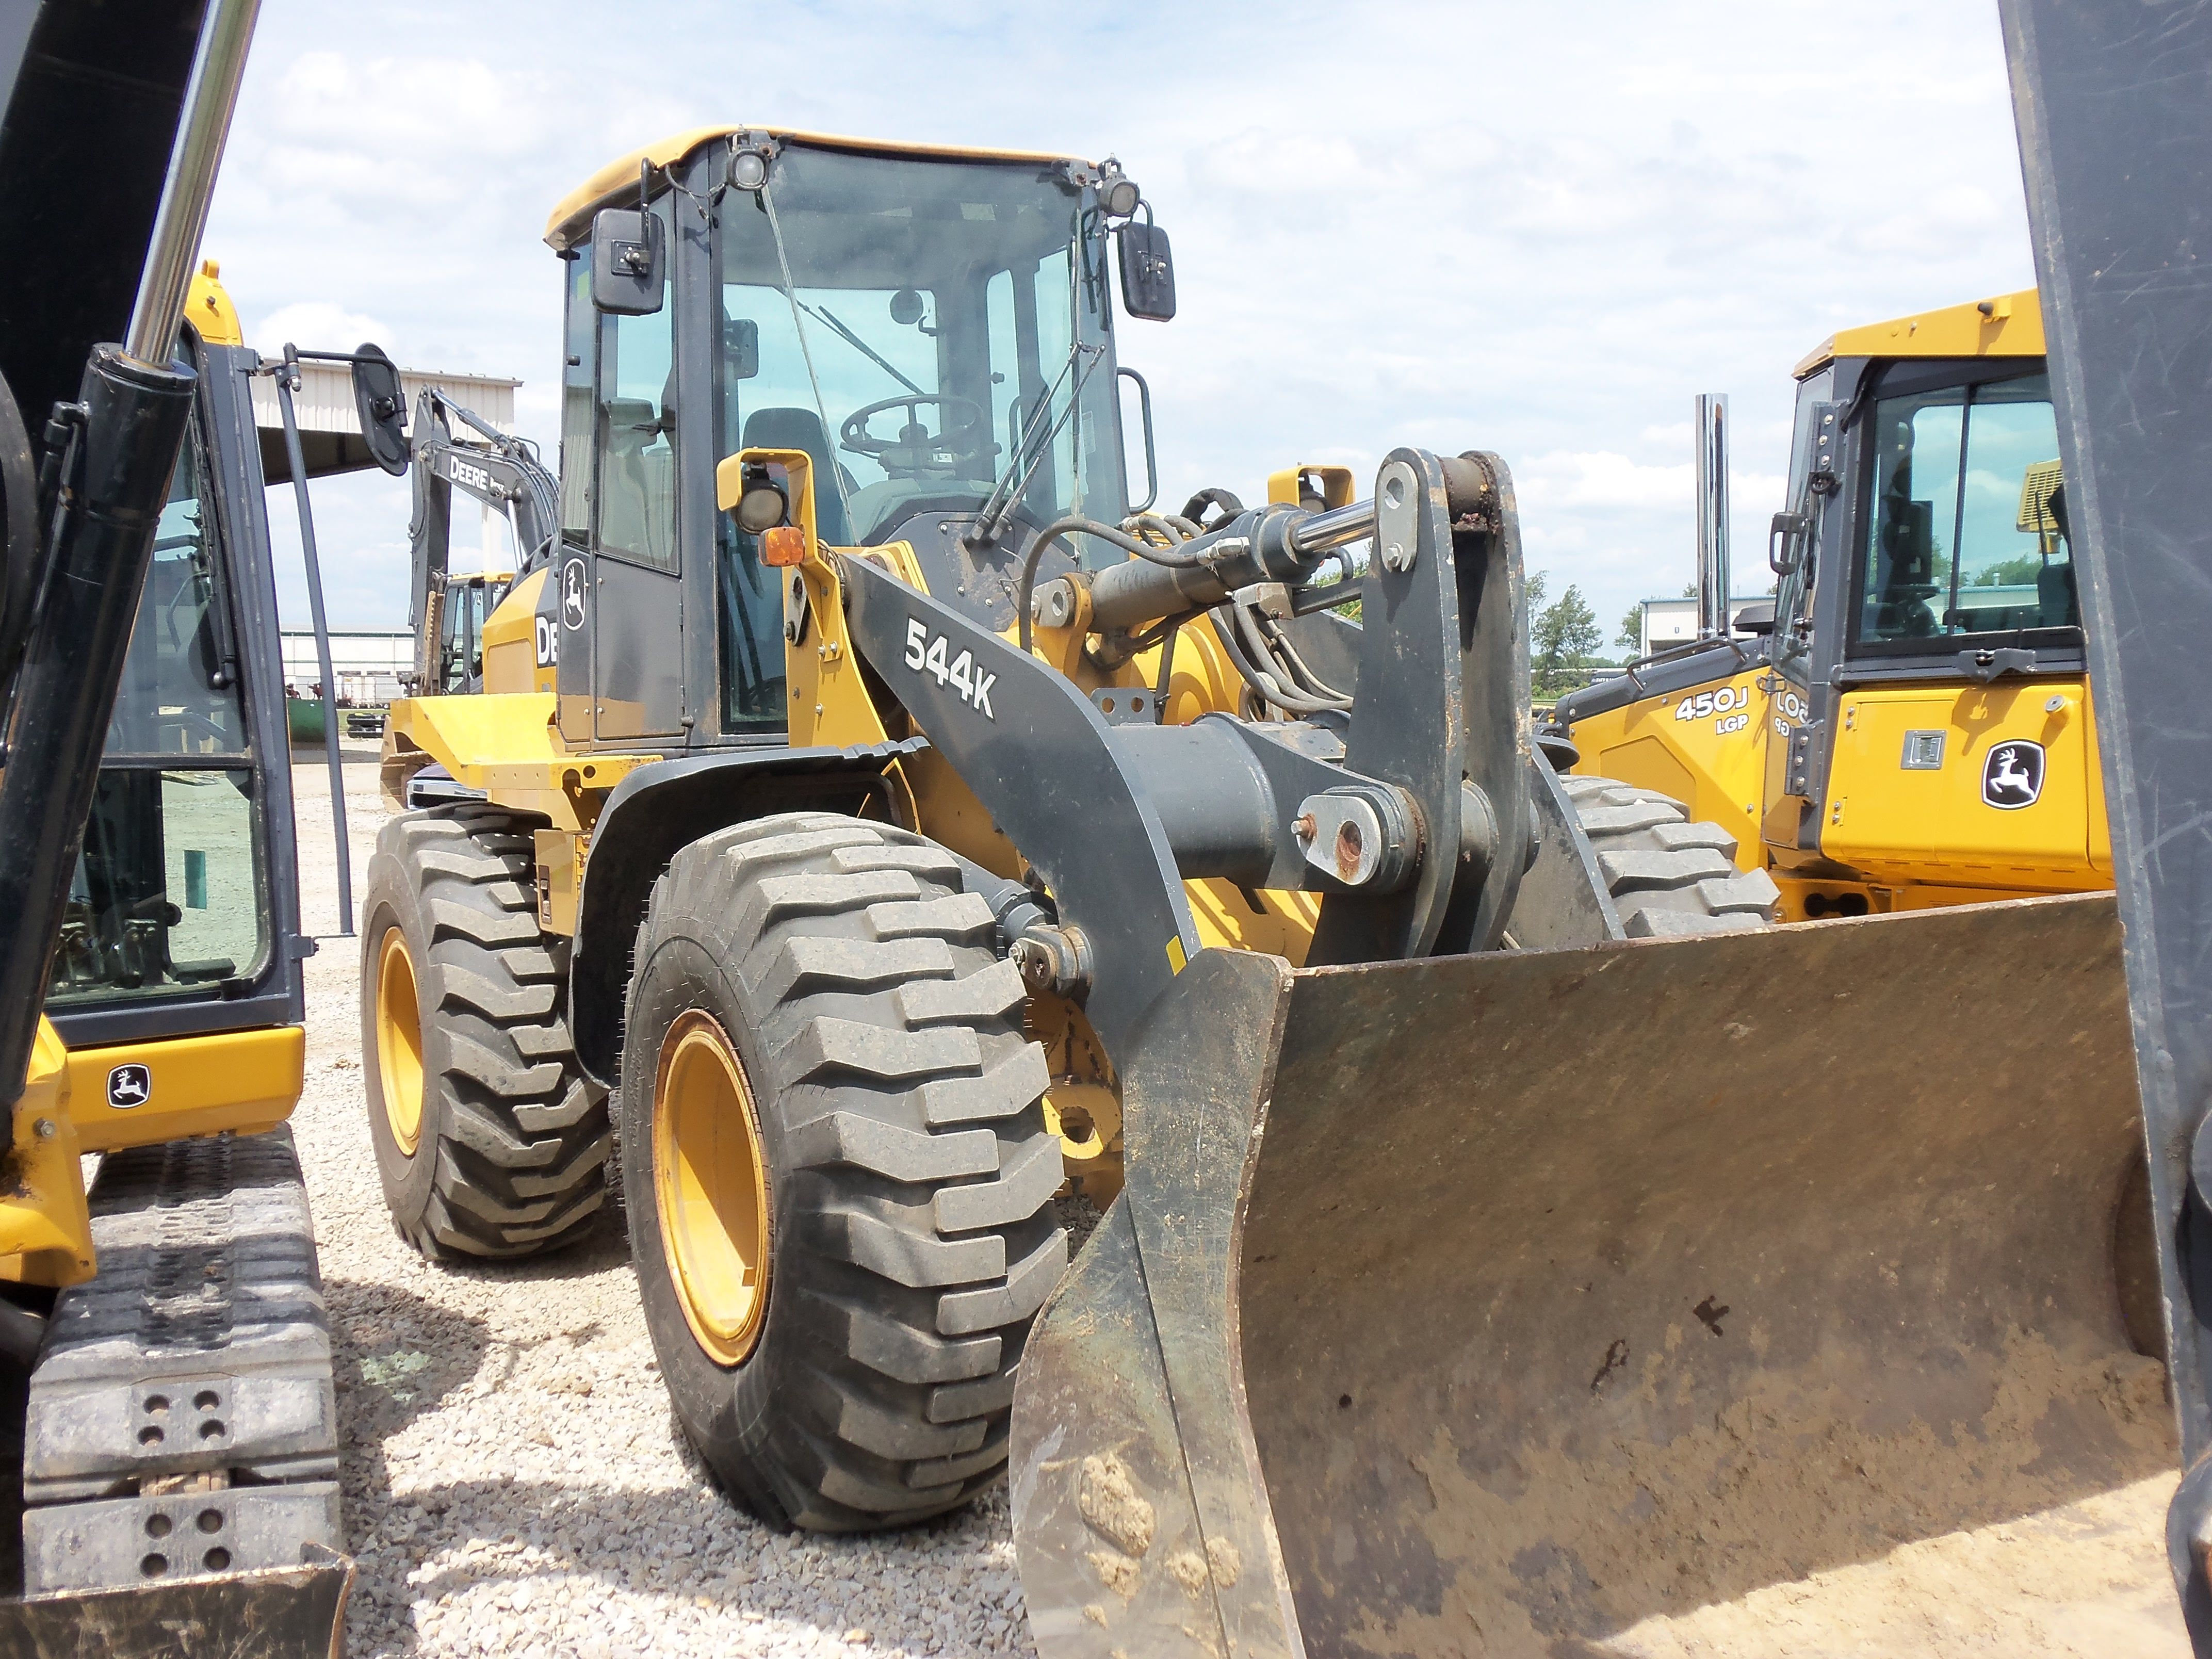 544K wheel loader.2013 is the 45th Anniversary of the introduction of the  544 wheel loader.Since 1968 John Deere has made the  JD544,JD544-A,JD544-B,544C ...